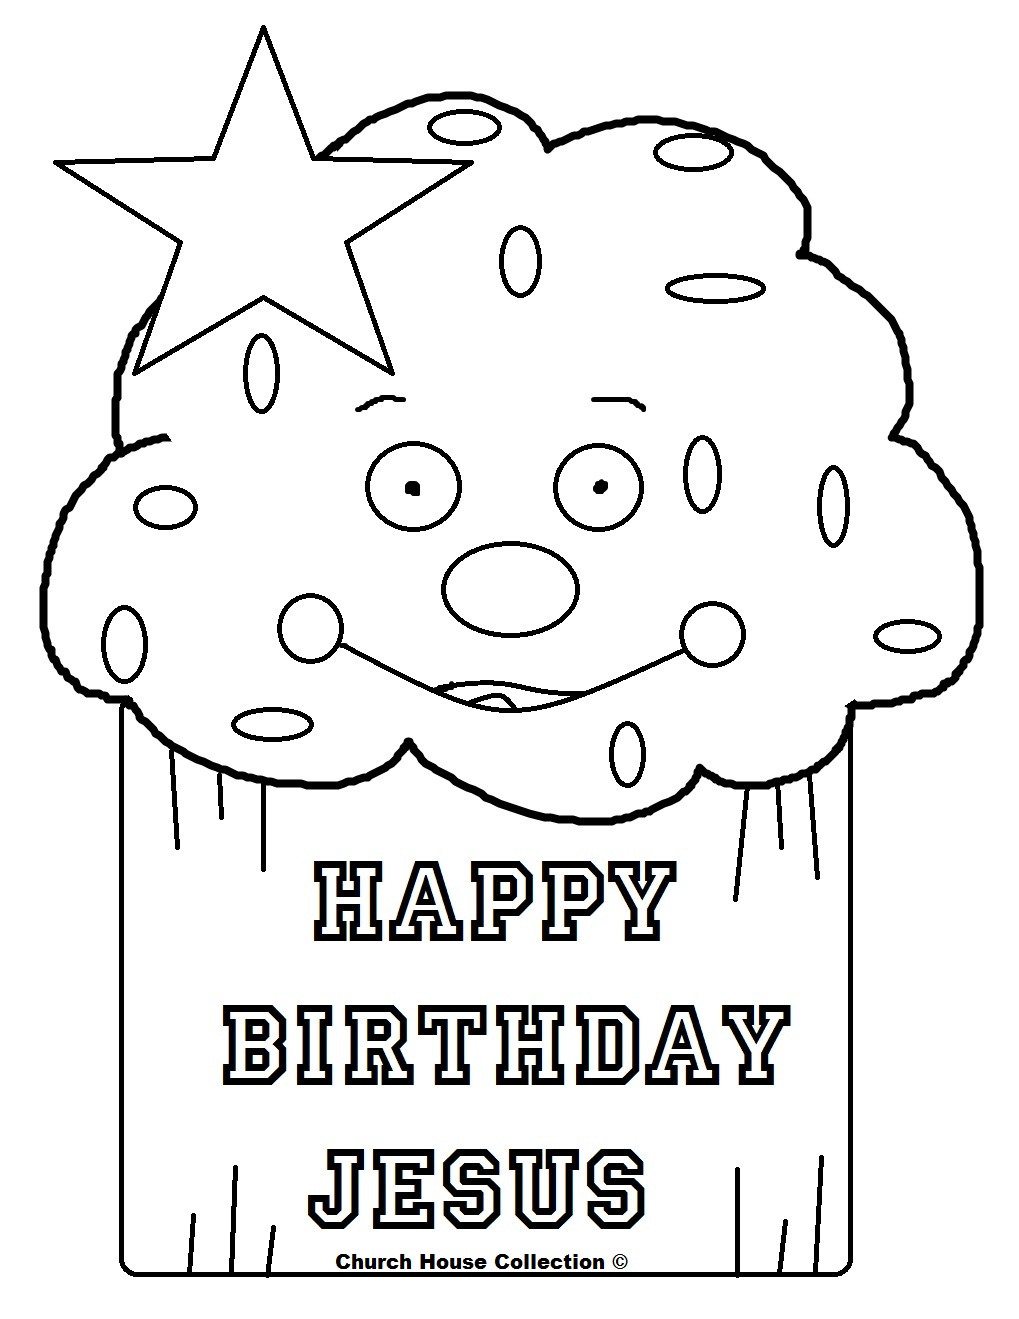 Happy Birthday Jesus Coloring Pages - Ronniebrownlifesystems